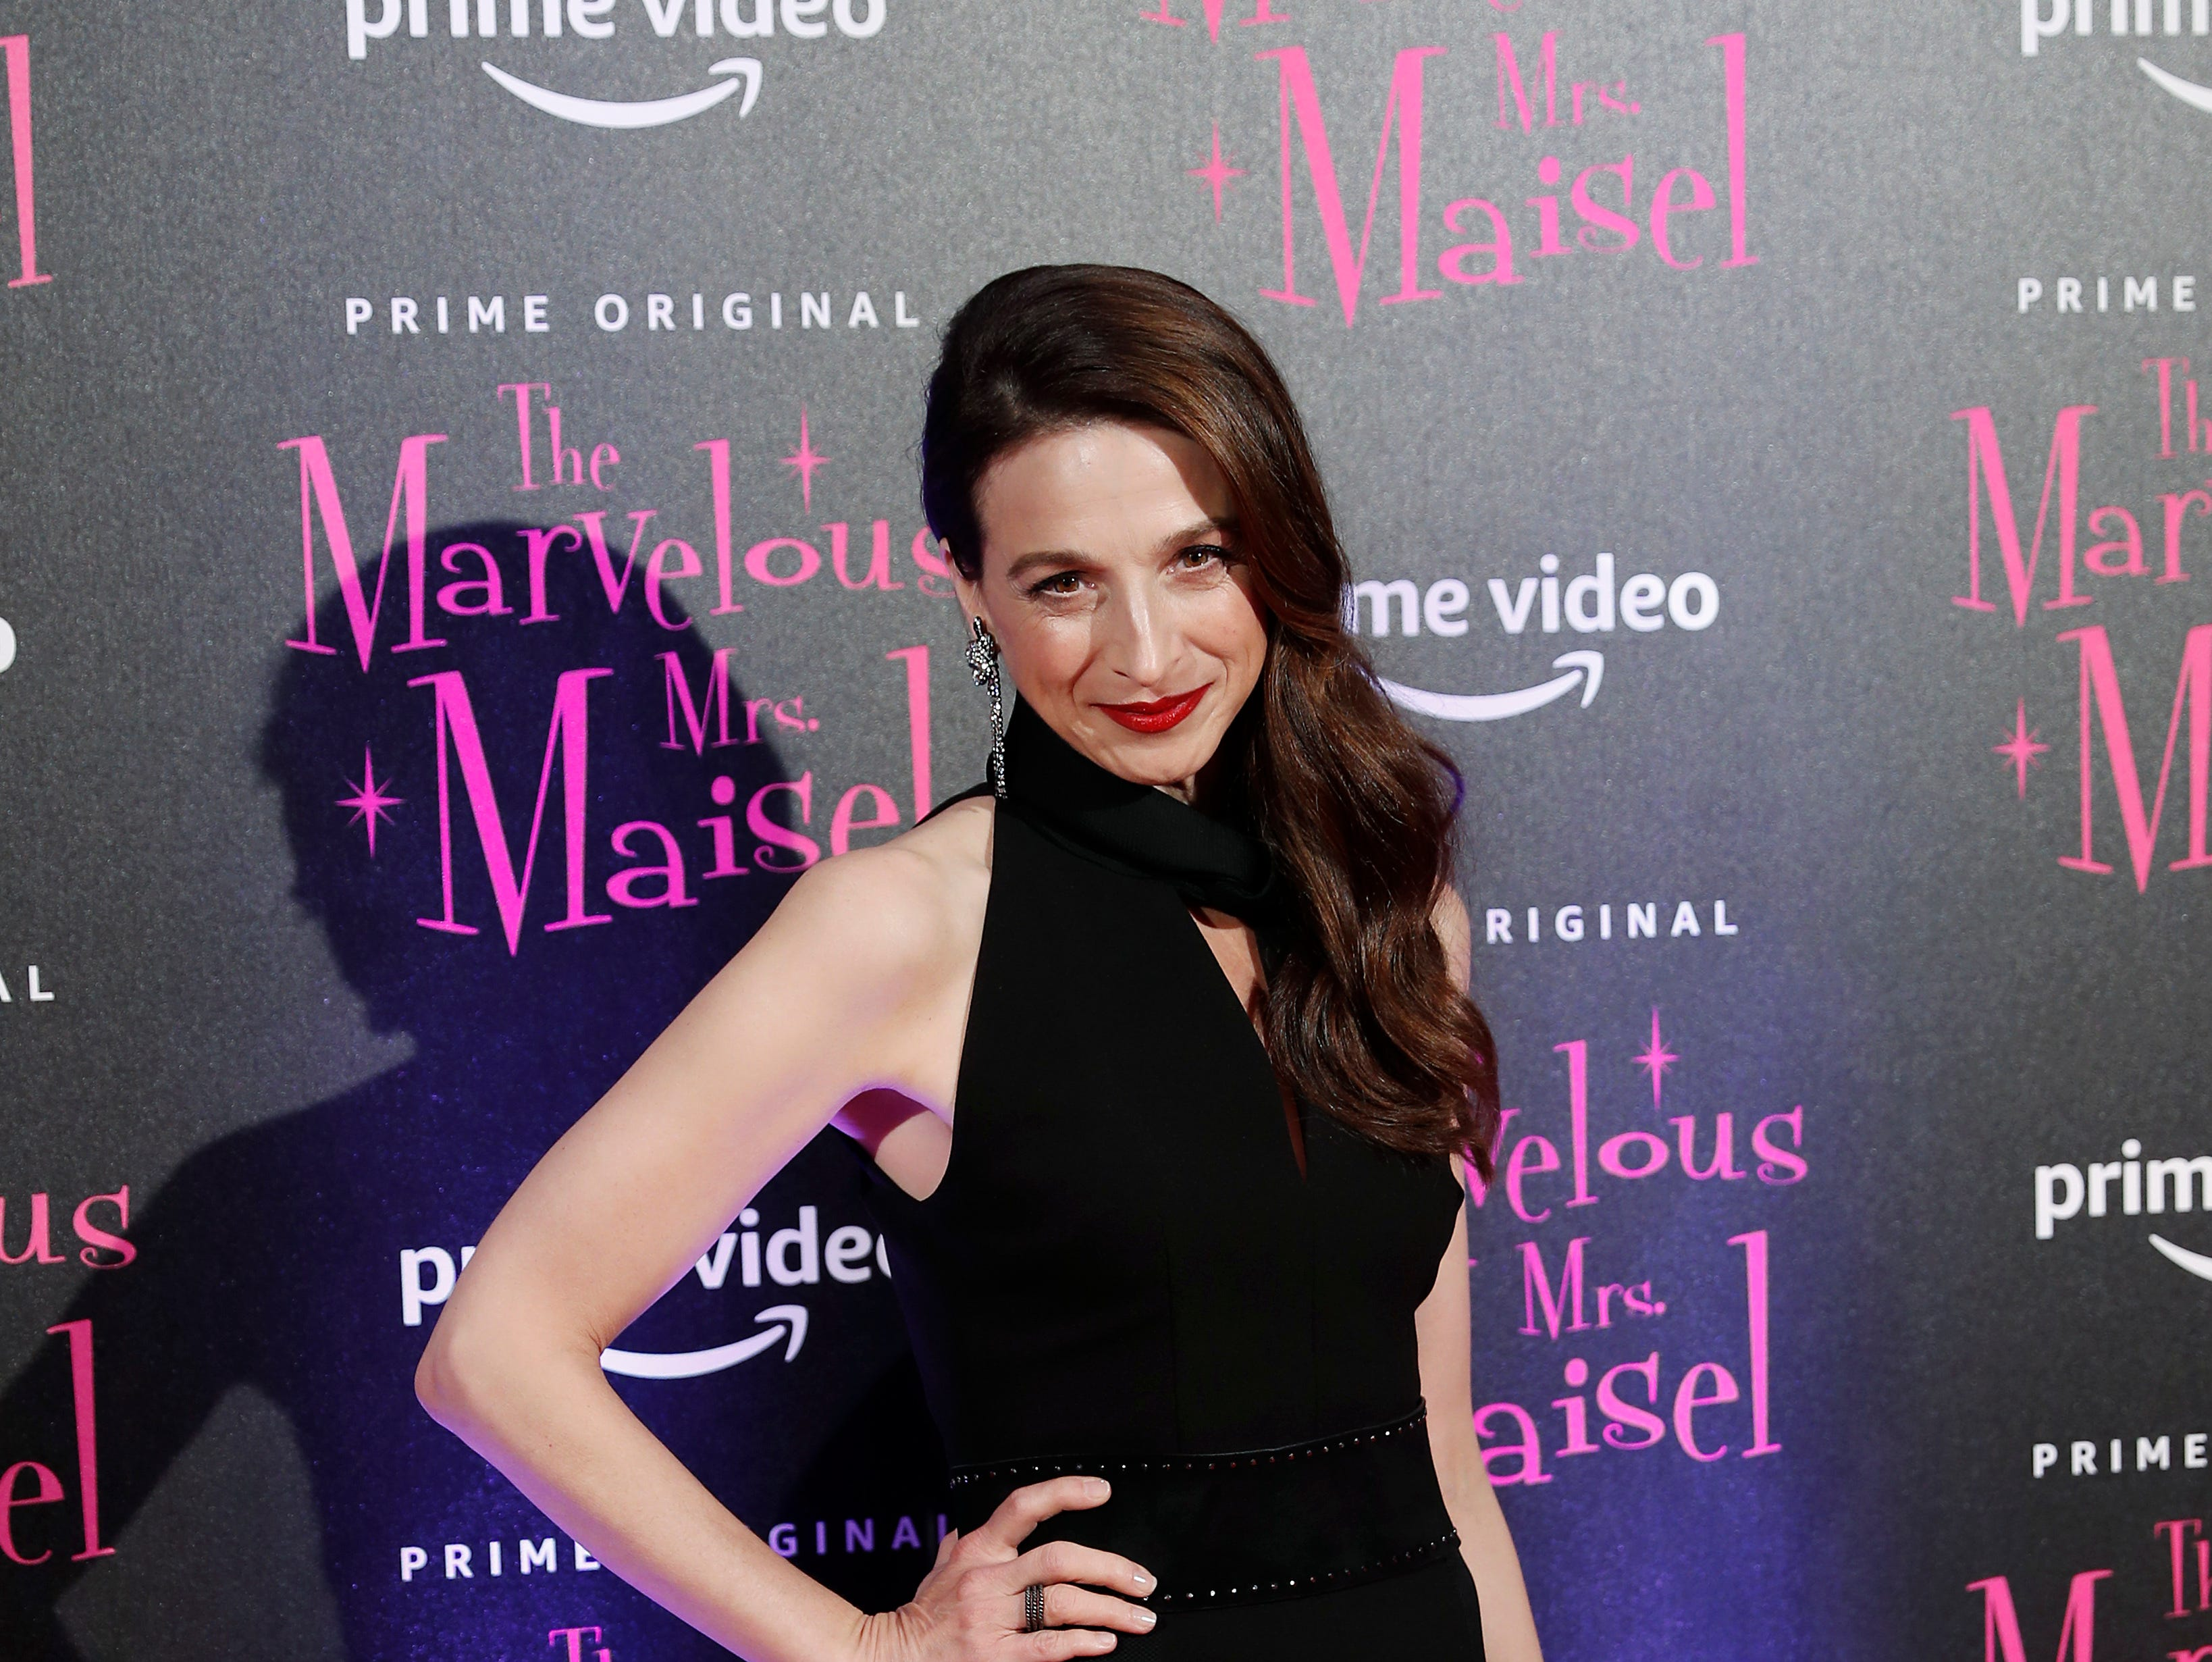 """Actress Marin Hinkle poses for photographers at the European Premiere of """"The Marvelous Mrs. Maisel"""" season 2, in Milan, Italy, Monday, Dec. 3, 2018. (AP Photo/Antonio Calanni)"""